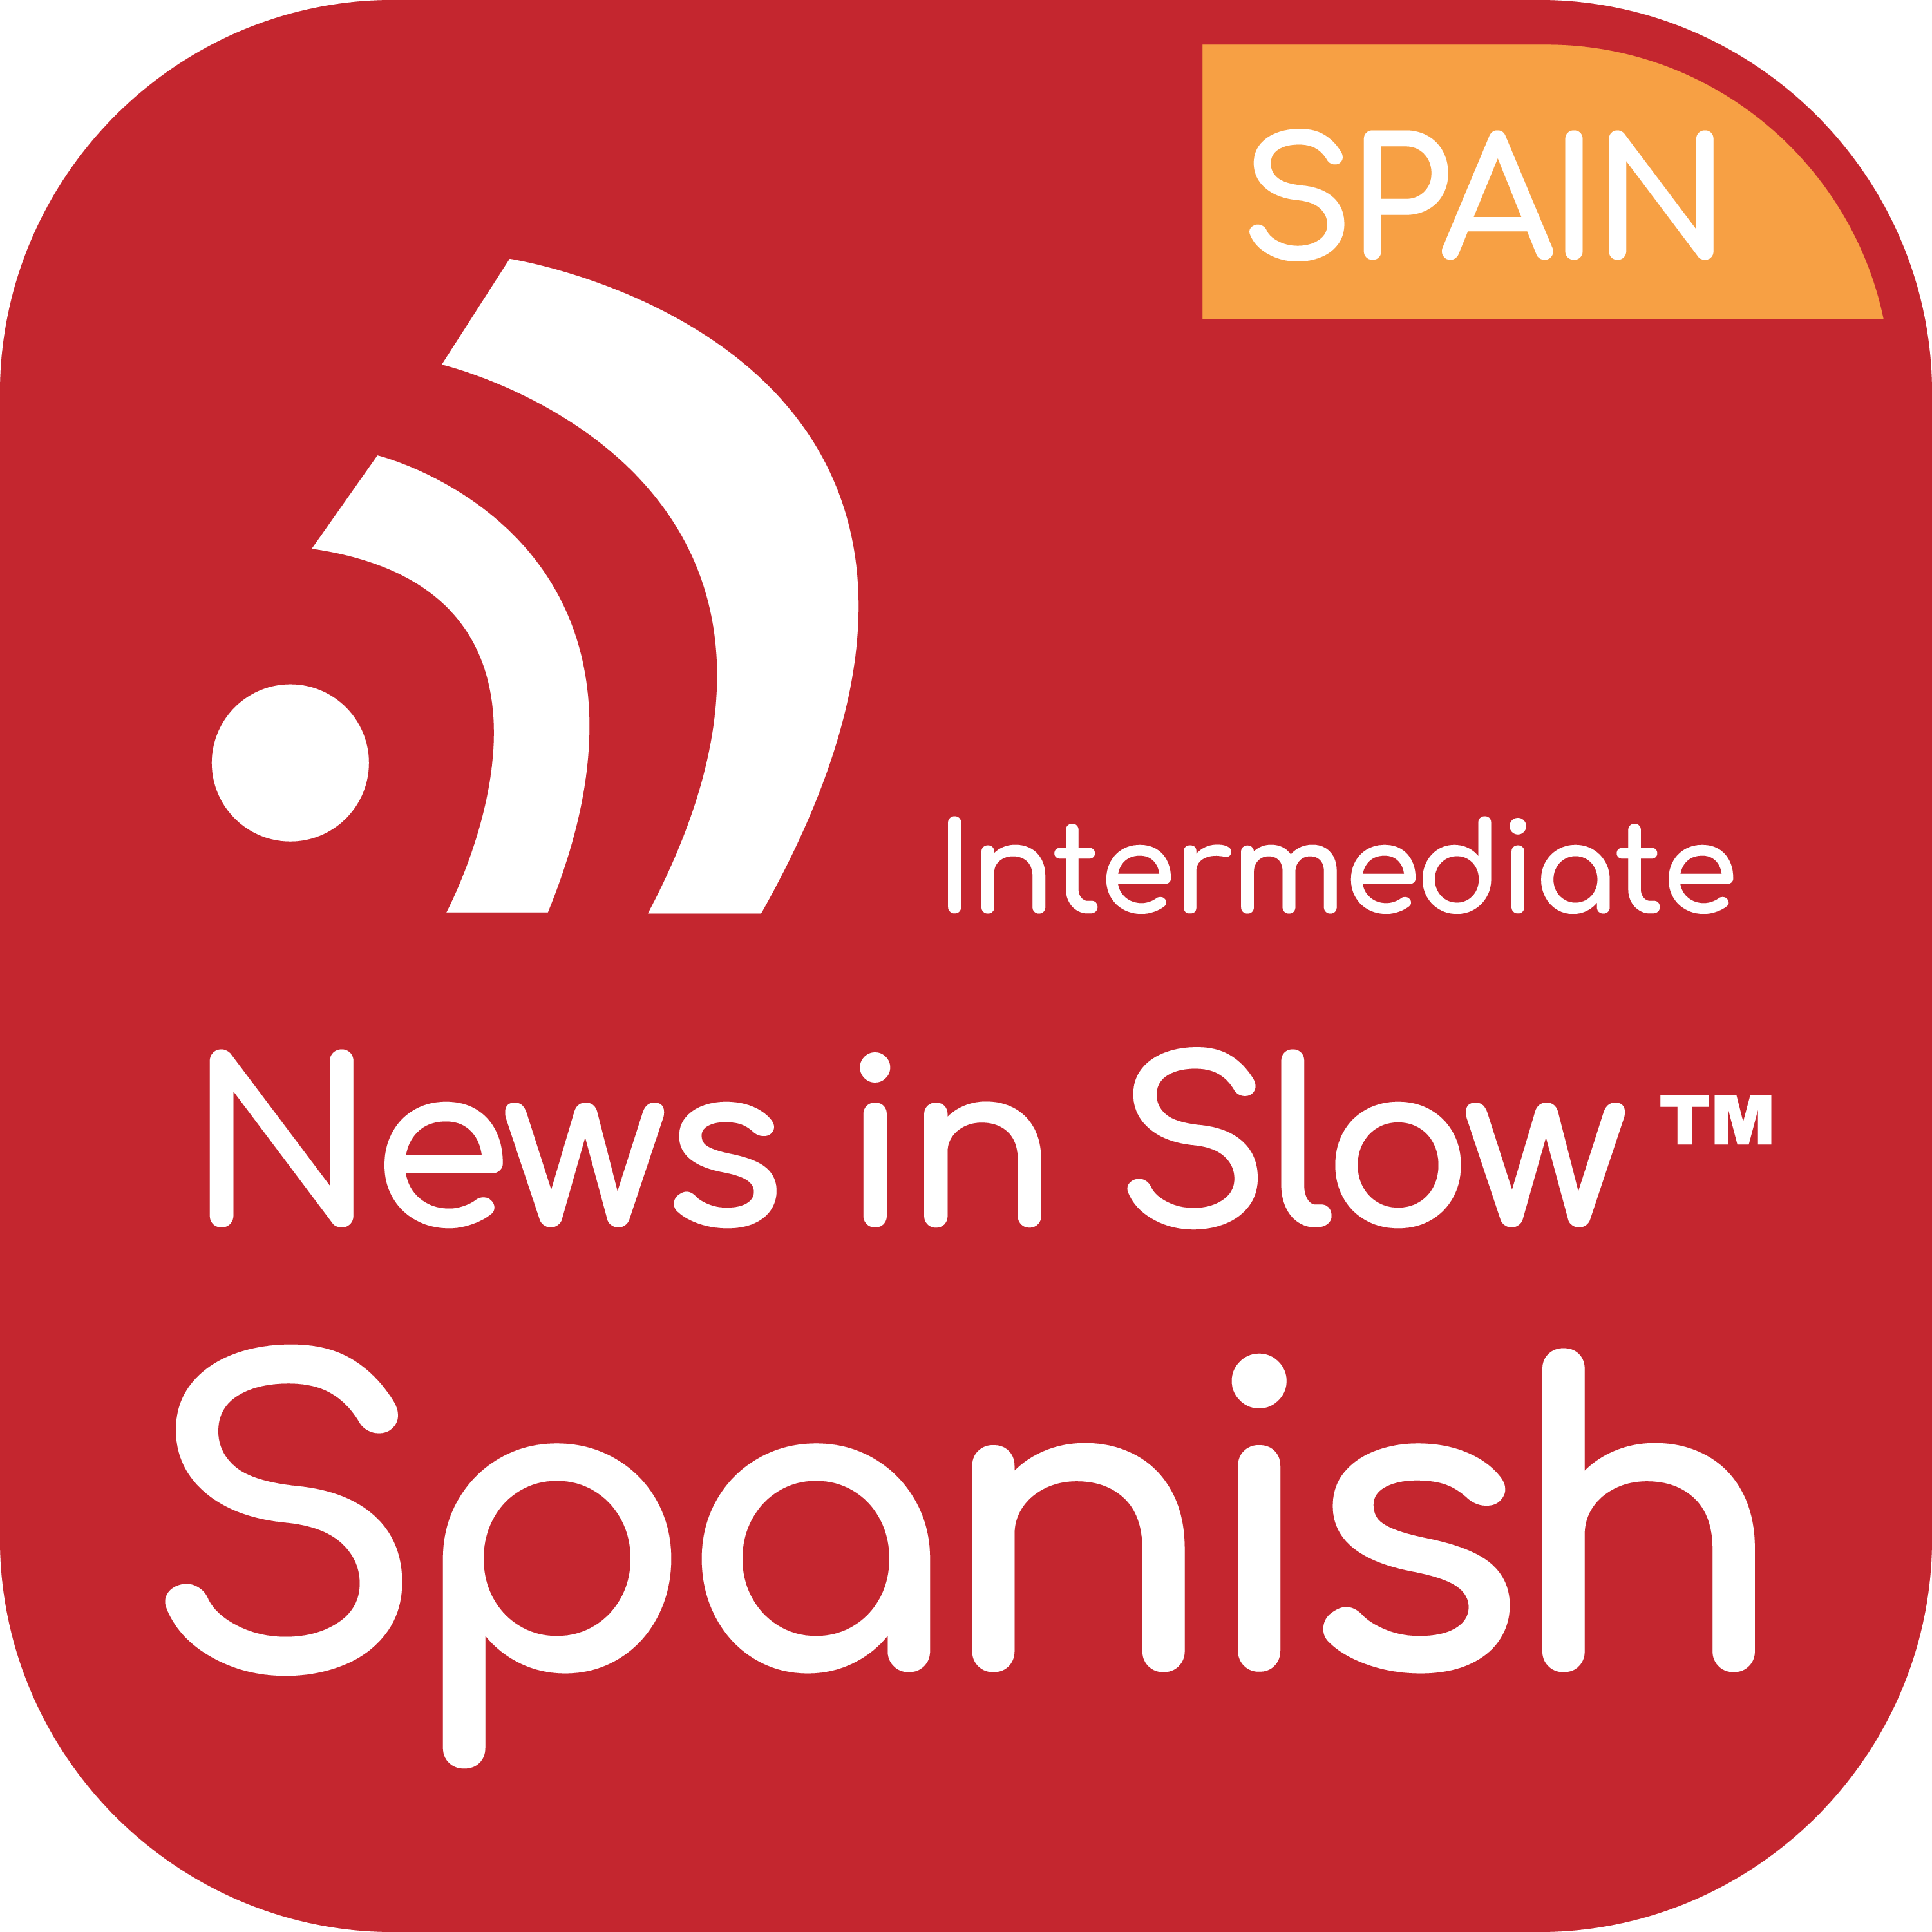 News in Slow Spanish - #620 - Intermediate Spanish Weekly Program